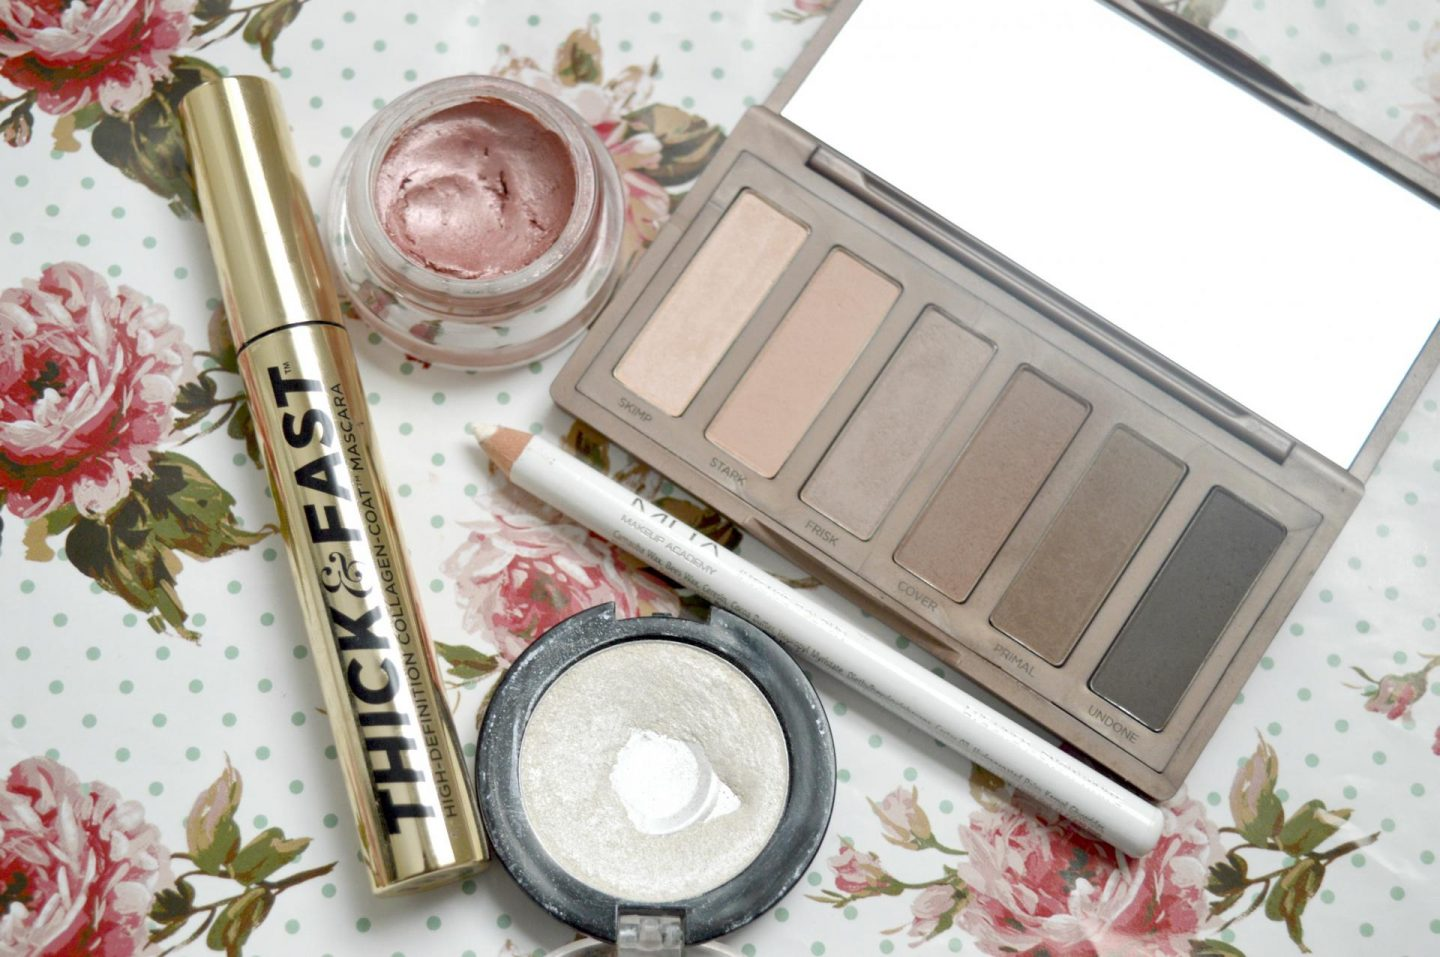 5 Eye Makeup Products That I Absolutely Love